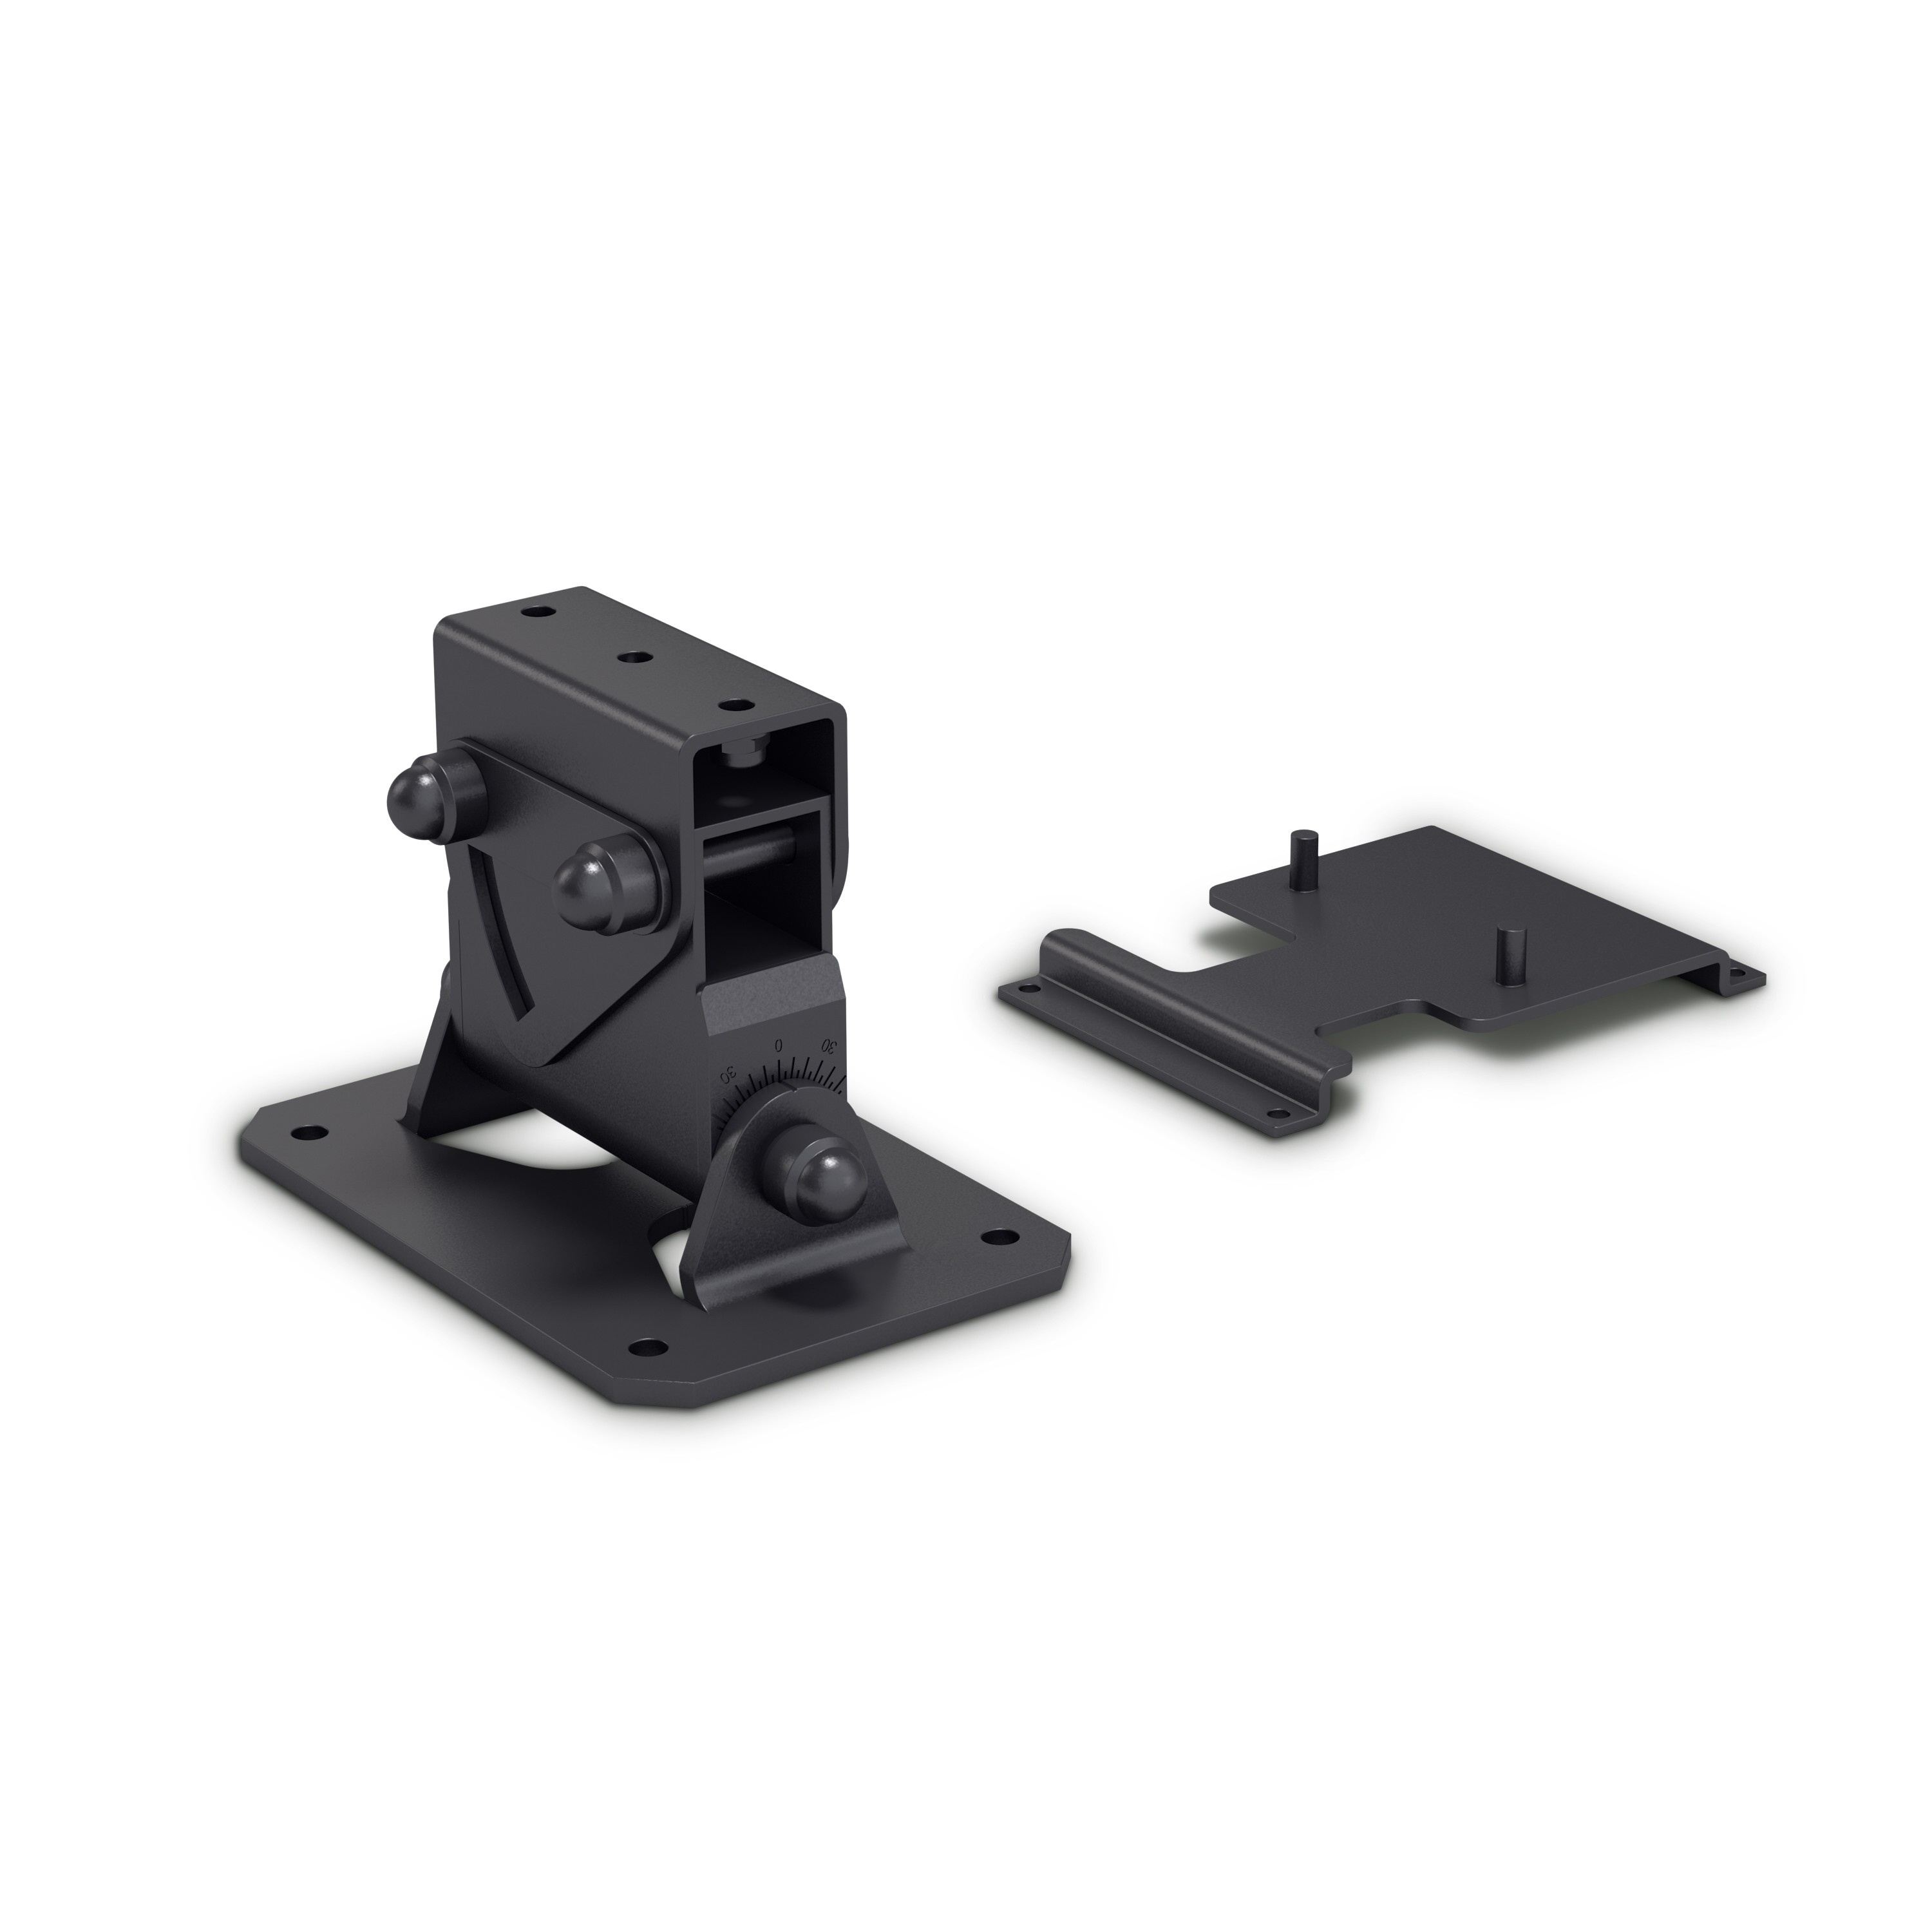 LD SYSTEMS Stinger 8 A G3 WMB 1: muurbeugel Stinger G3 8A